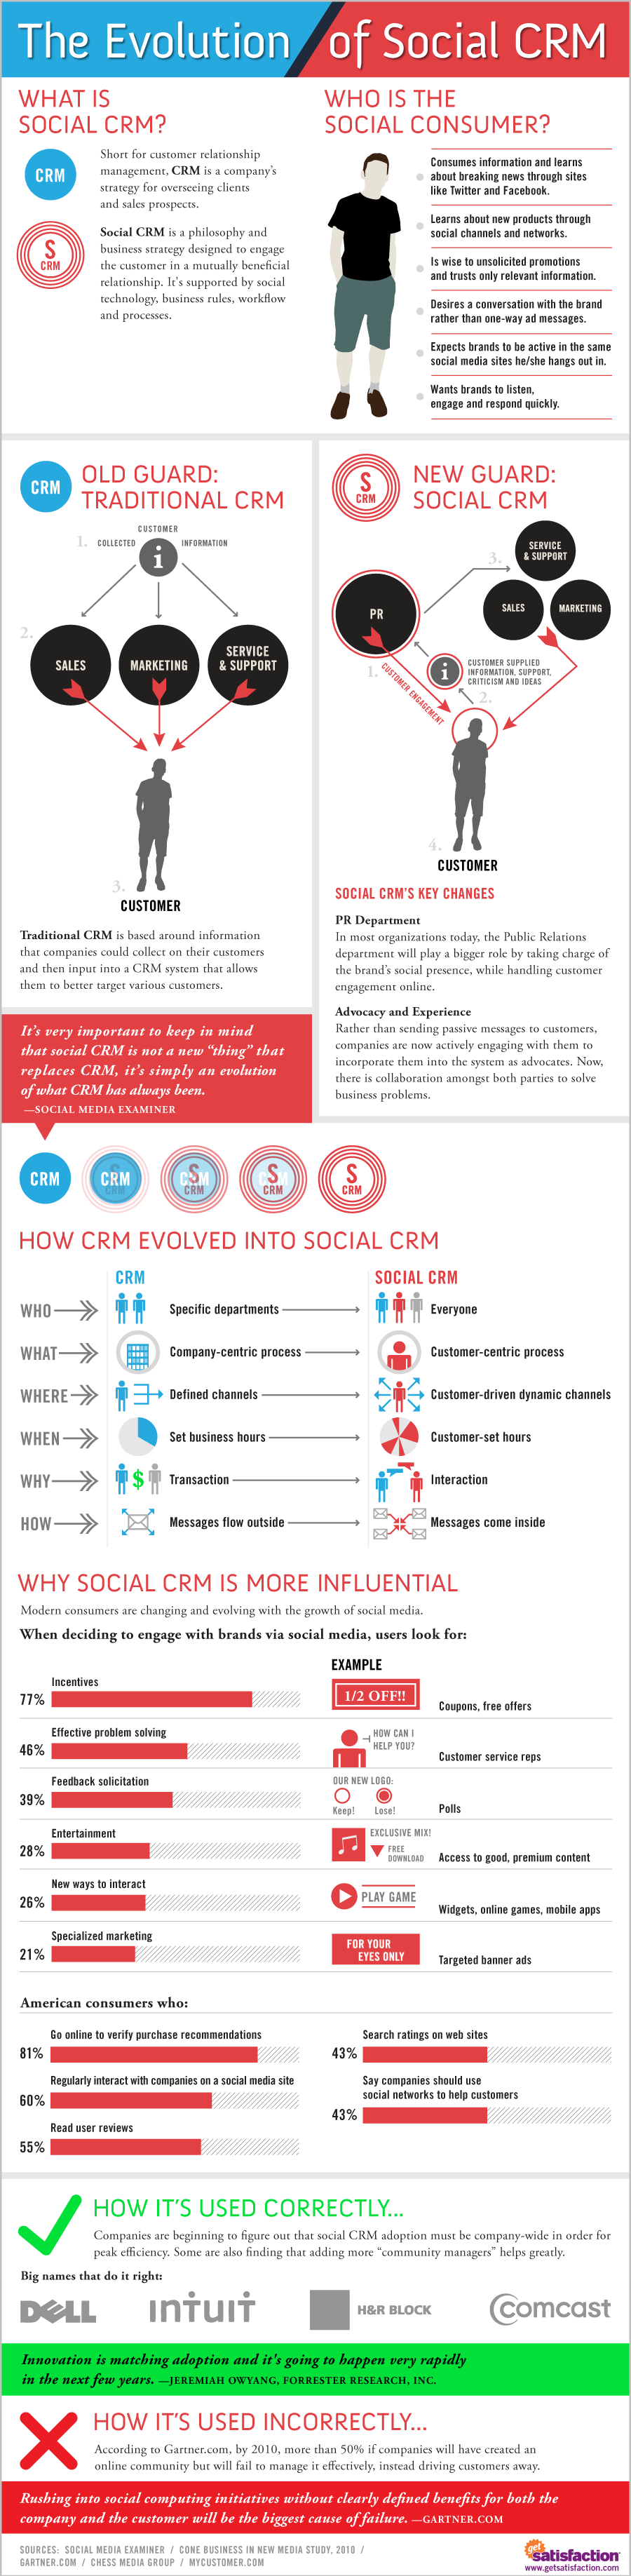 Infographic - Evolution of Social CRM